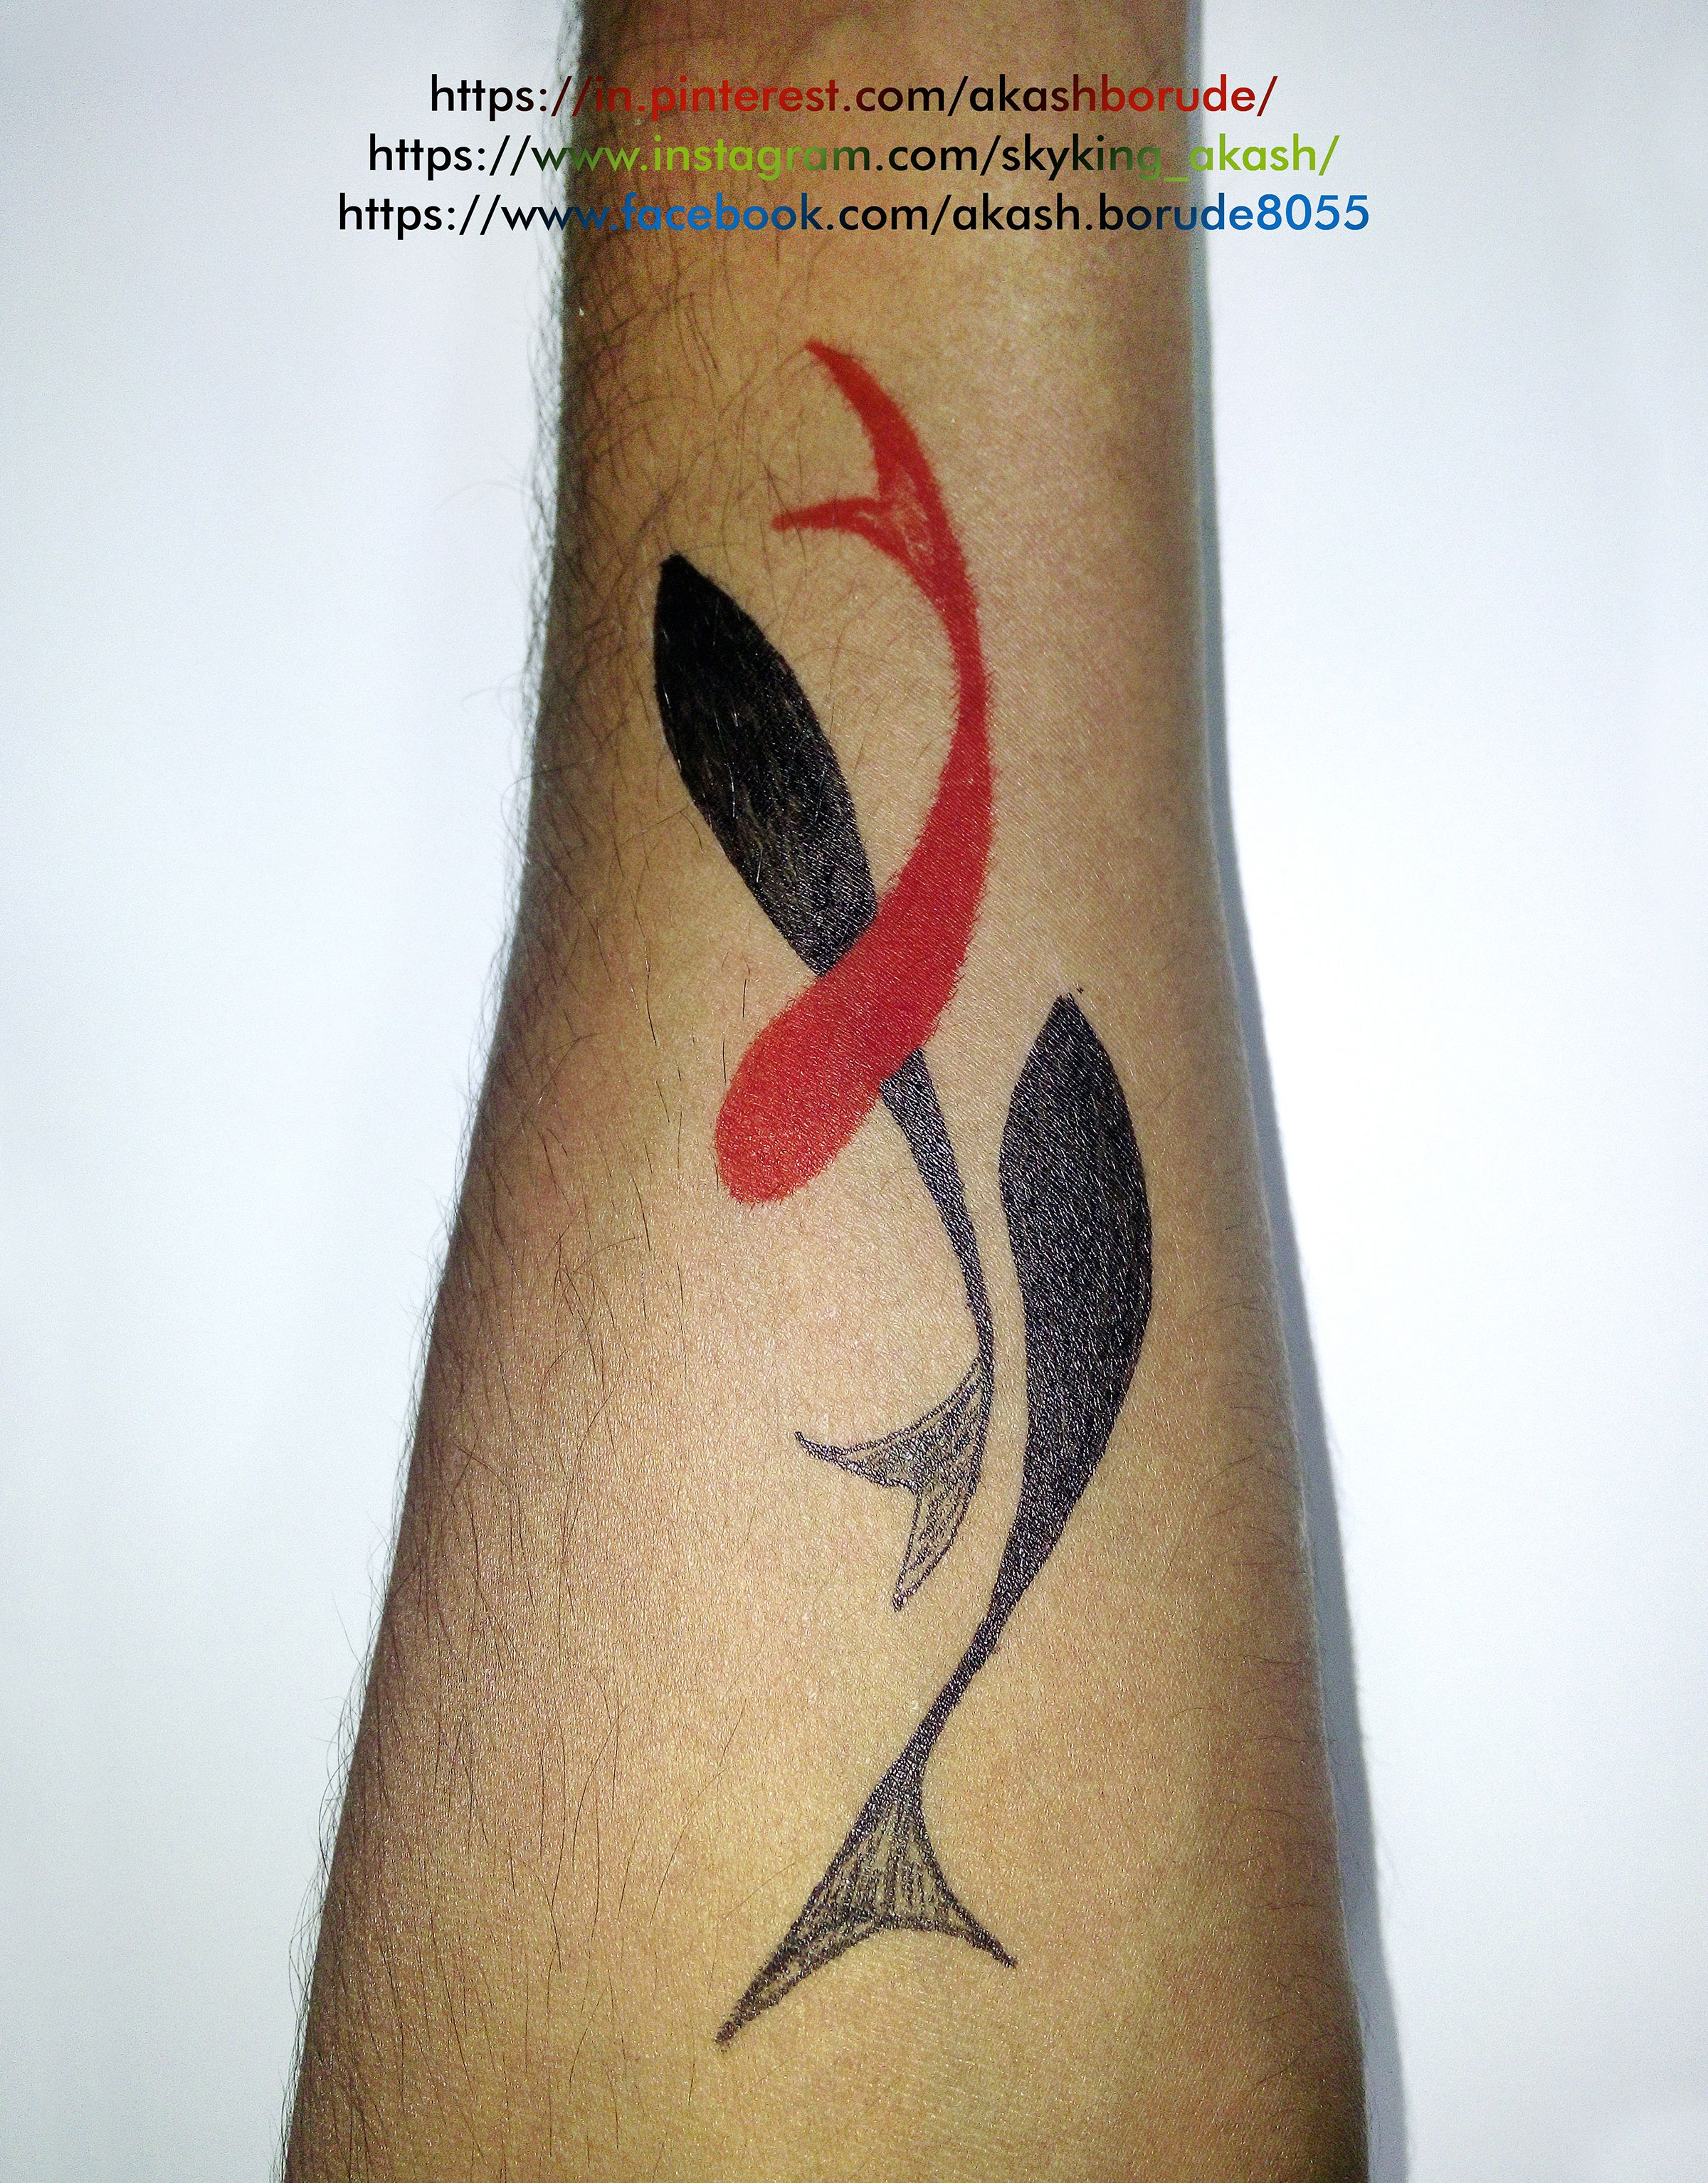 #TattooArtist #SelfMade #MyDesign #MyTattoo #OneDayTrial #PenUseOnly 12/2/2015